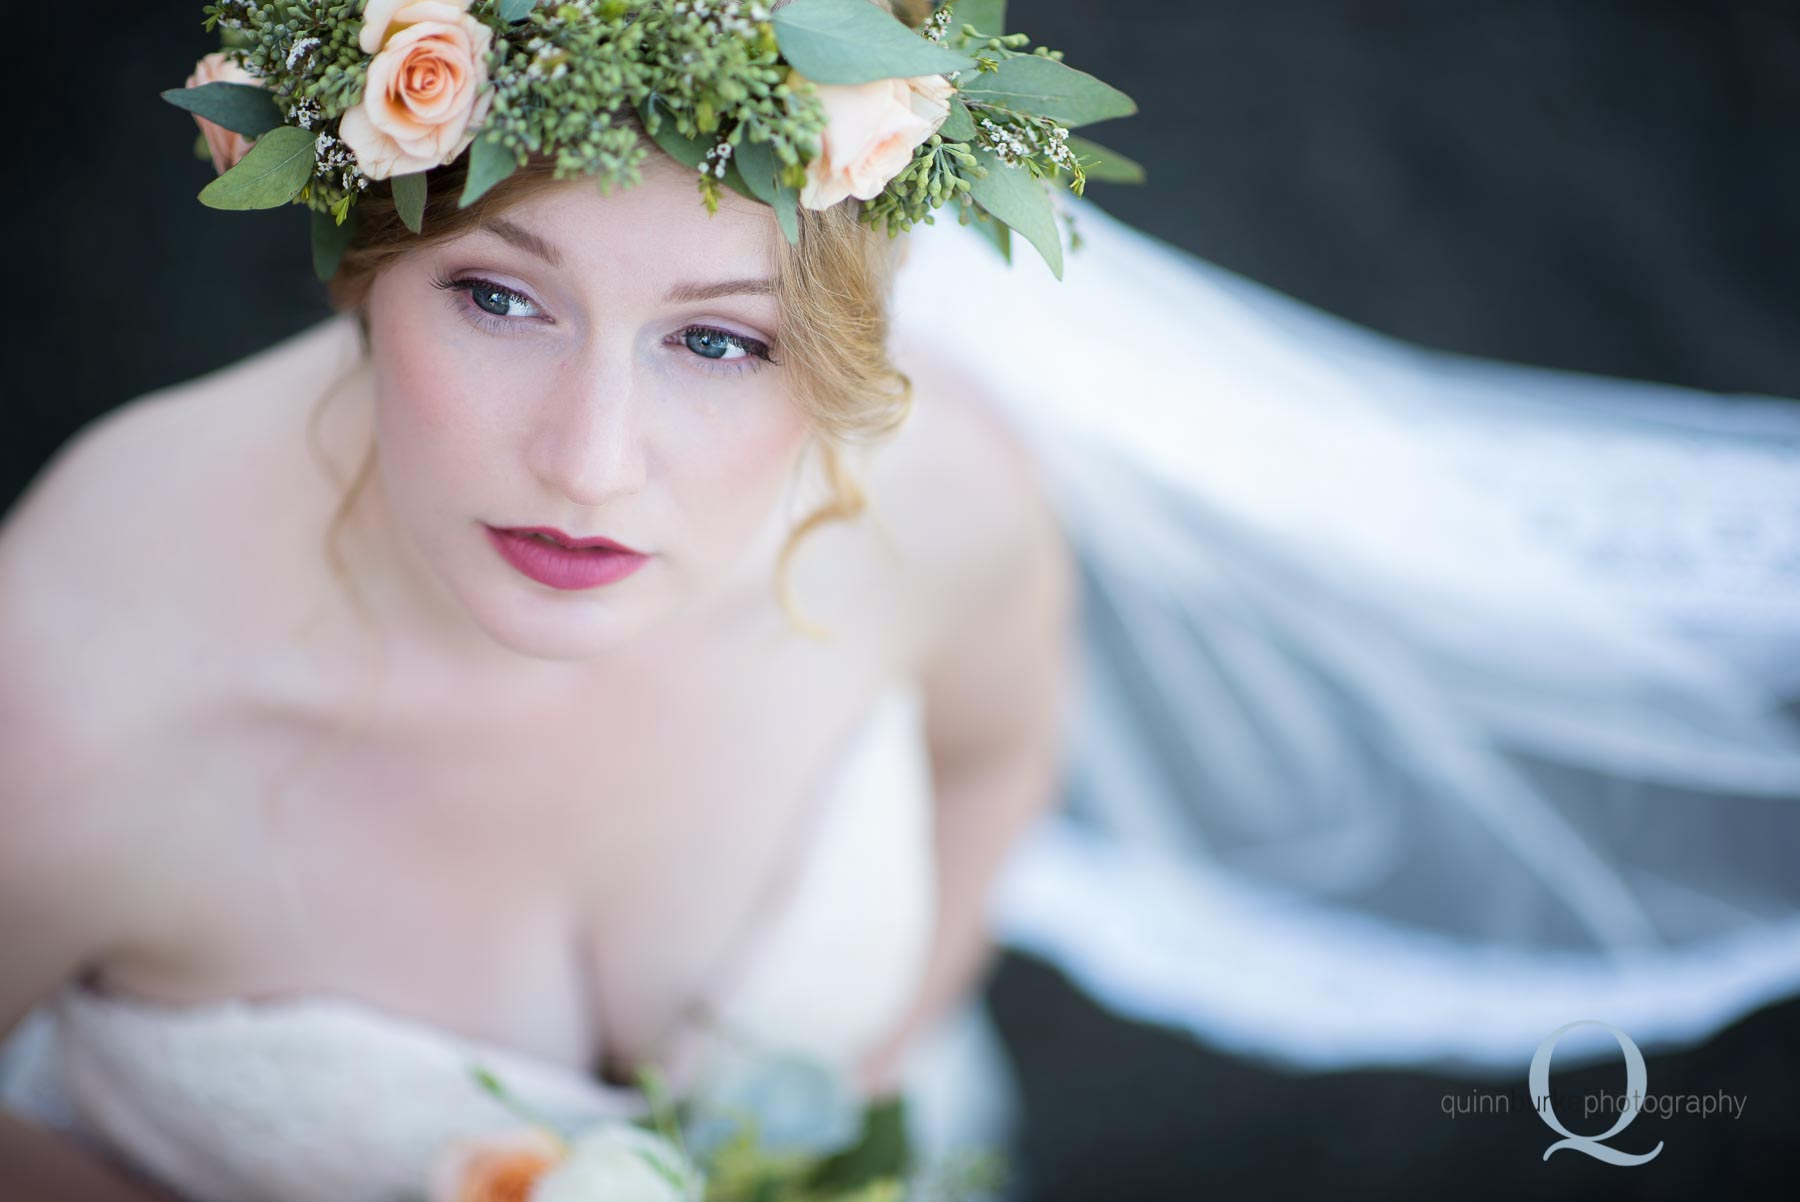 top view of bride flower crown wedding Perryhill Farm oregon